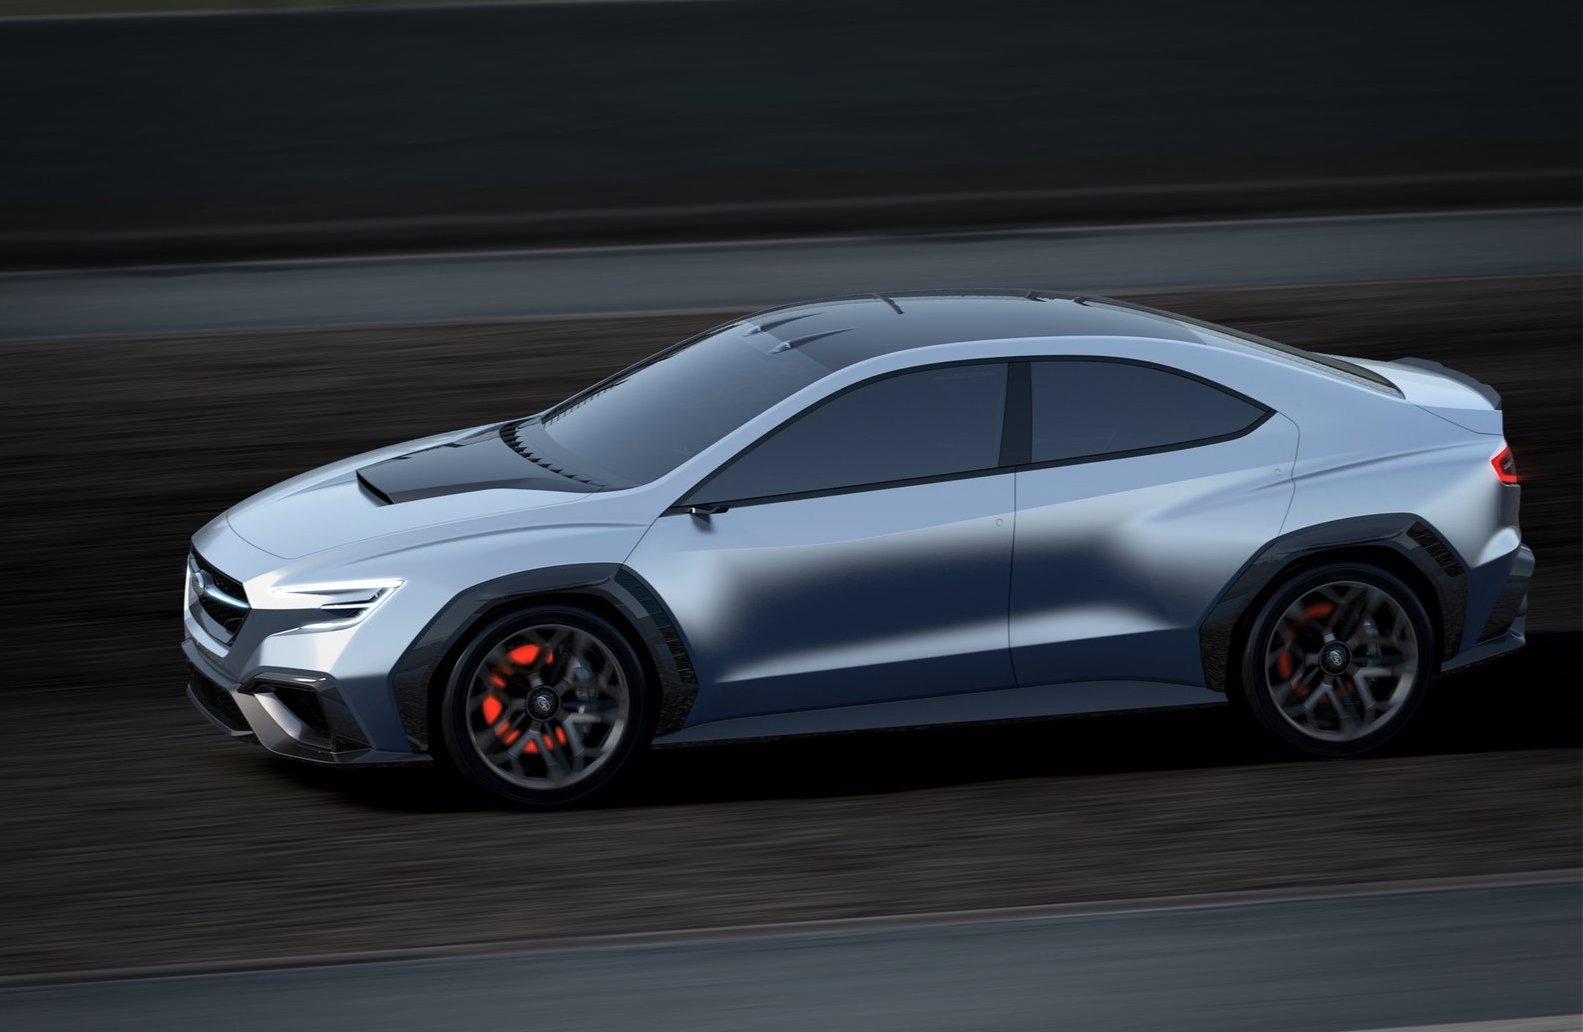 2020 subaru wrx to be plug in hybrid inspired by viziv concept report performancedrive. Black Bedroom Furniture Sets. Home Design Ideas